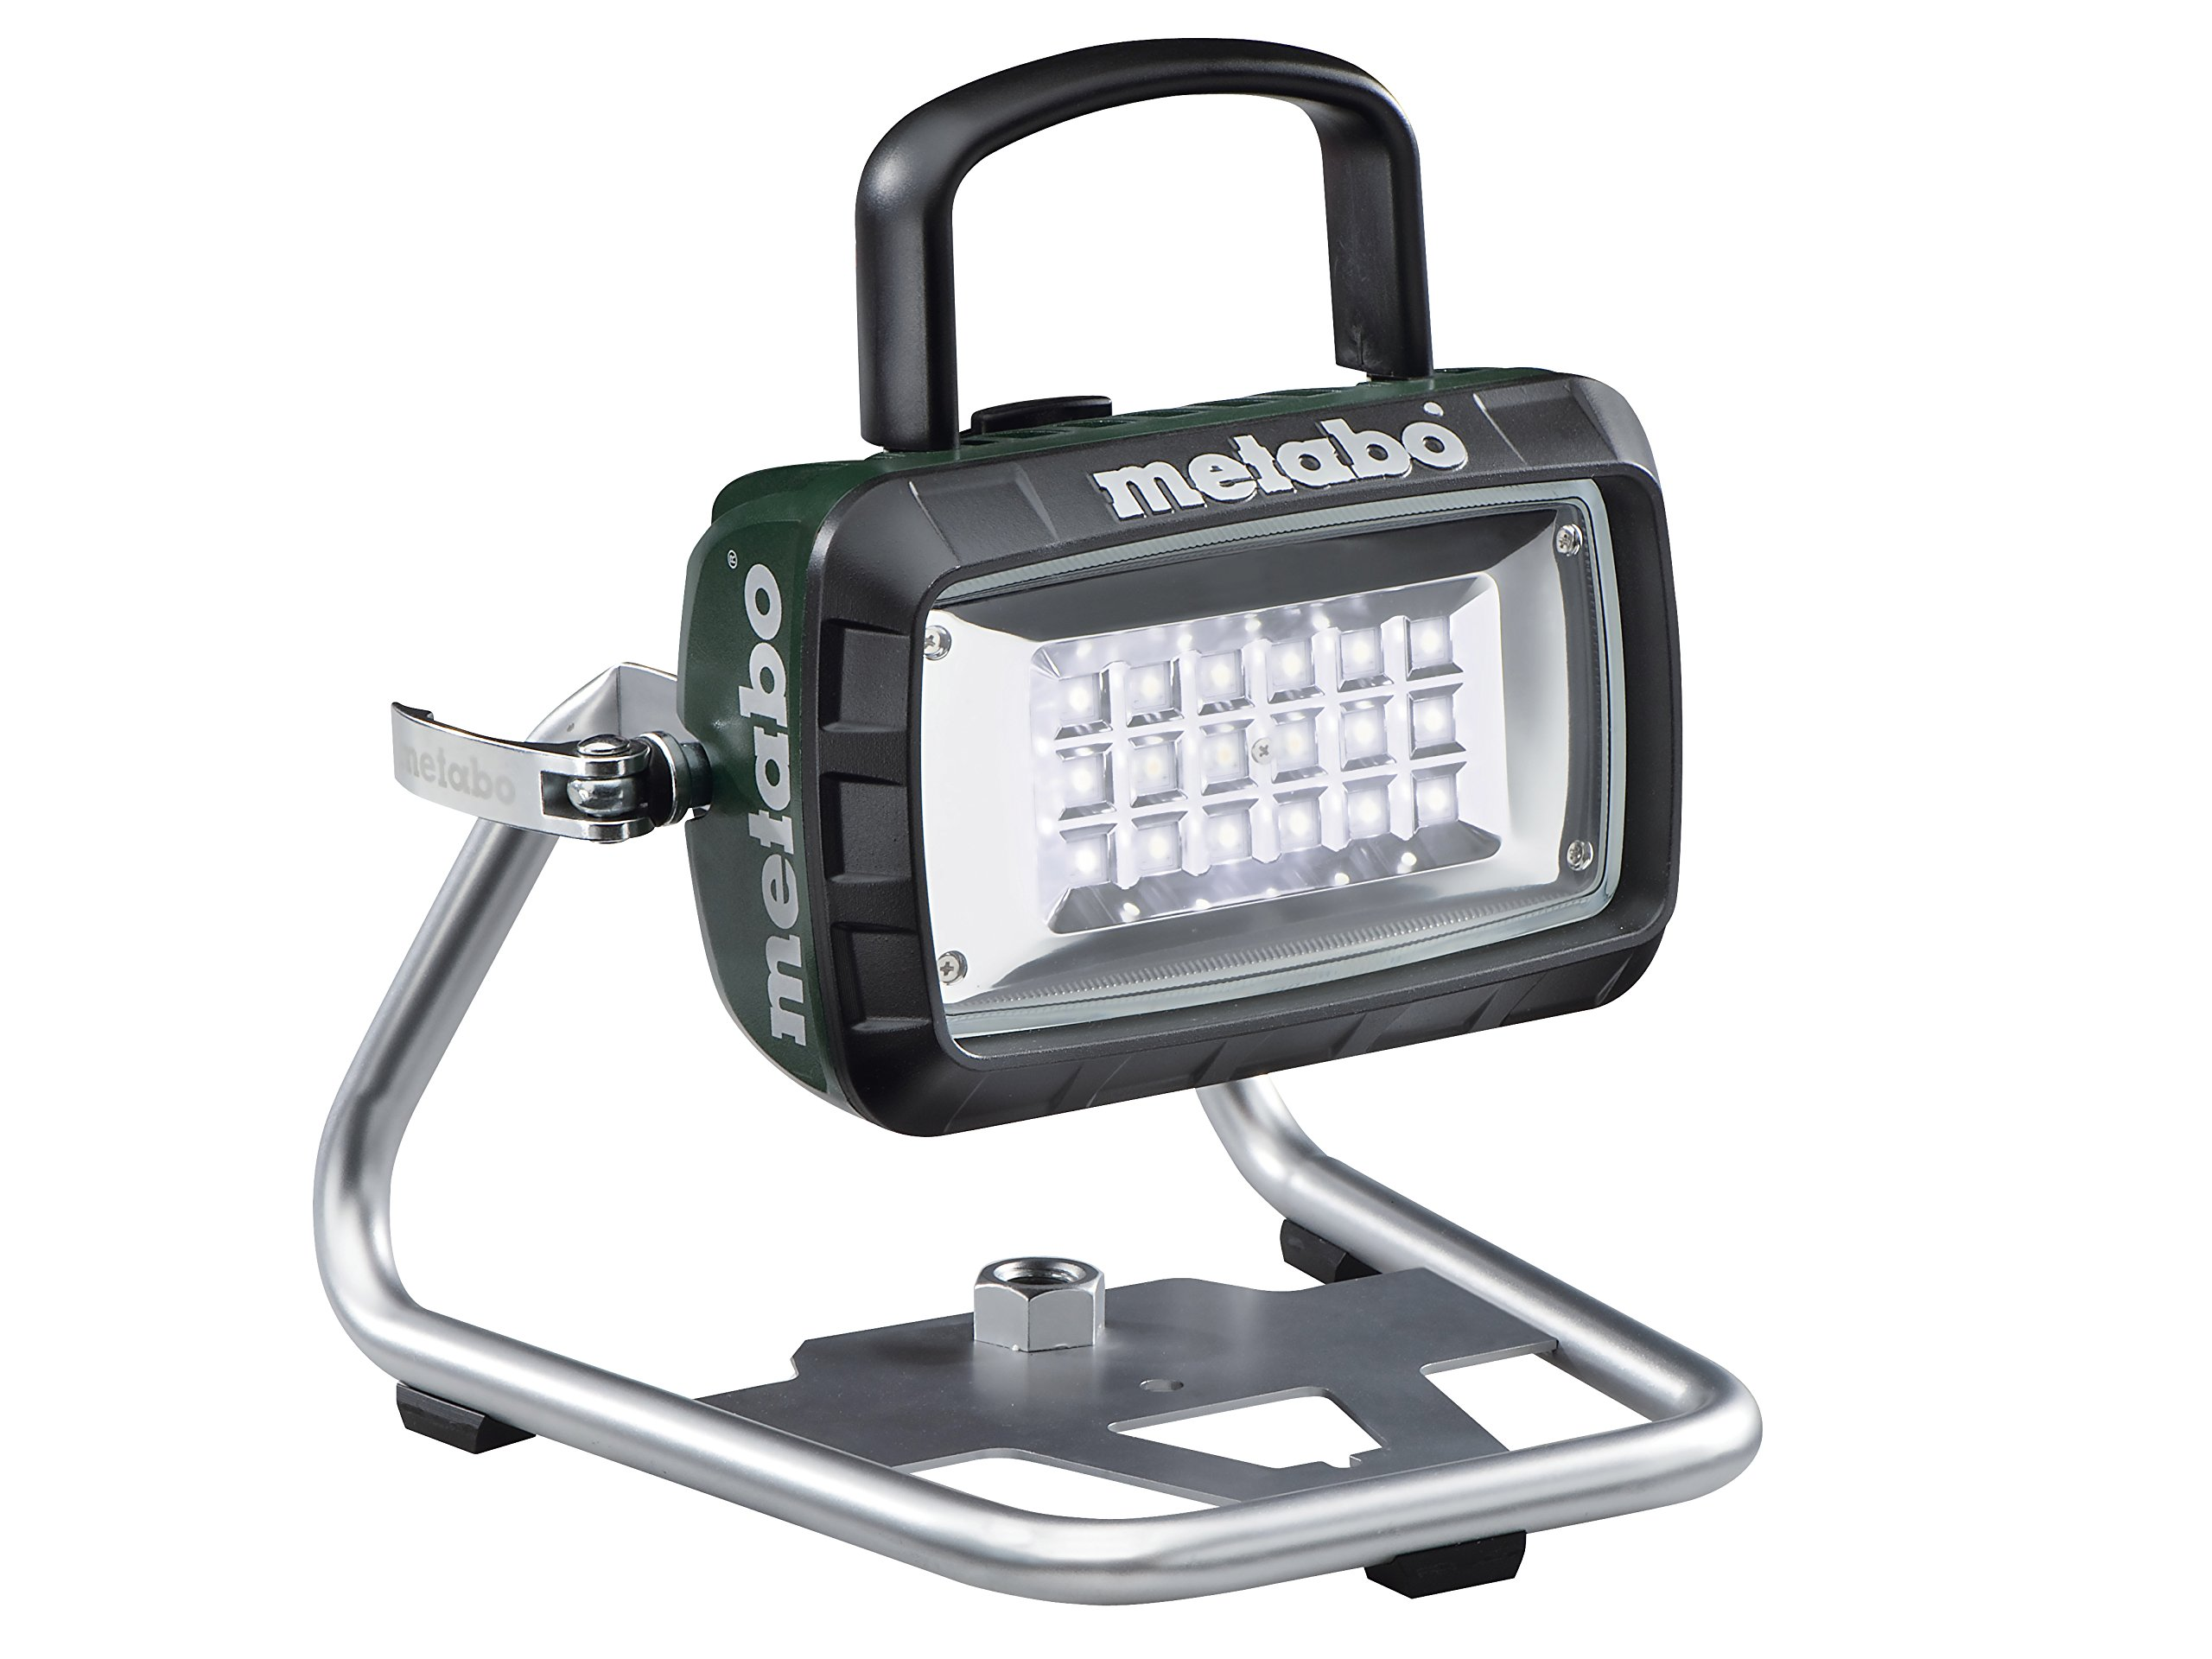 Metabo BSA 14.4-18 LED 18V Sight Light Bare Tool, Green/Grey by Metabo (Image #2)